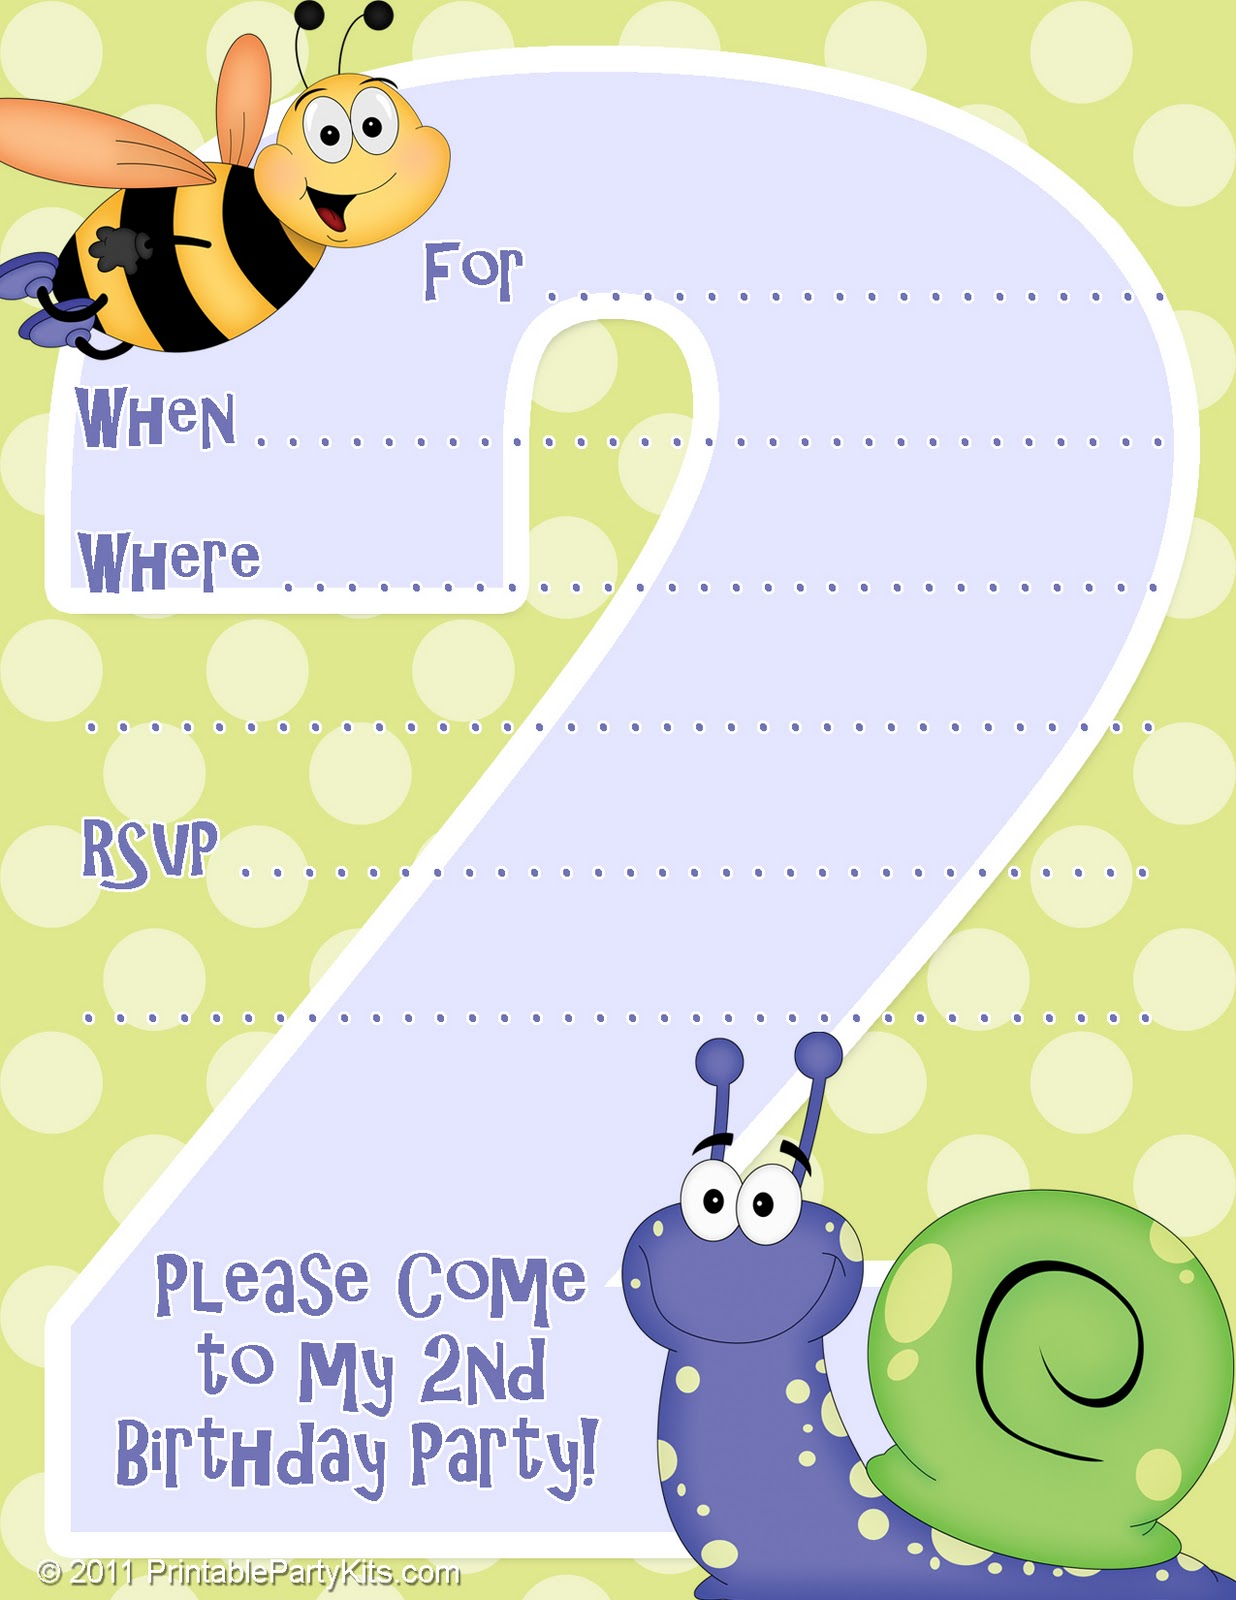 Free Printable Party Invitations: Invitation Template for a 2nd ...